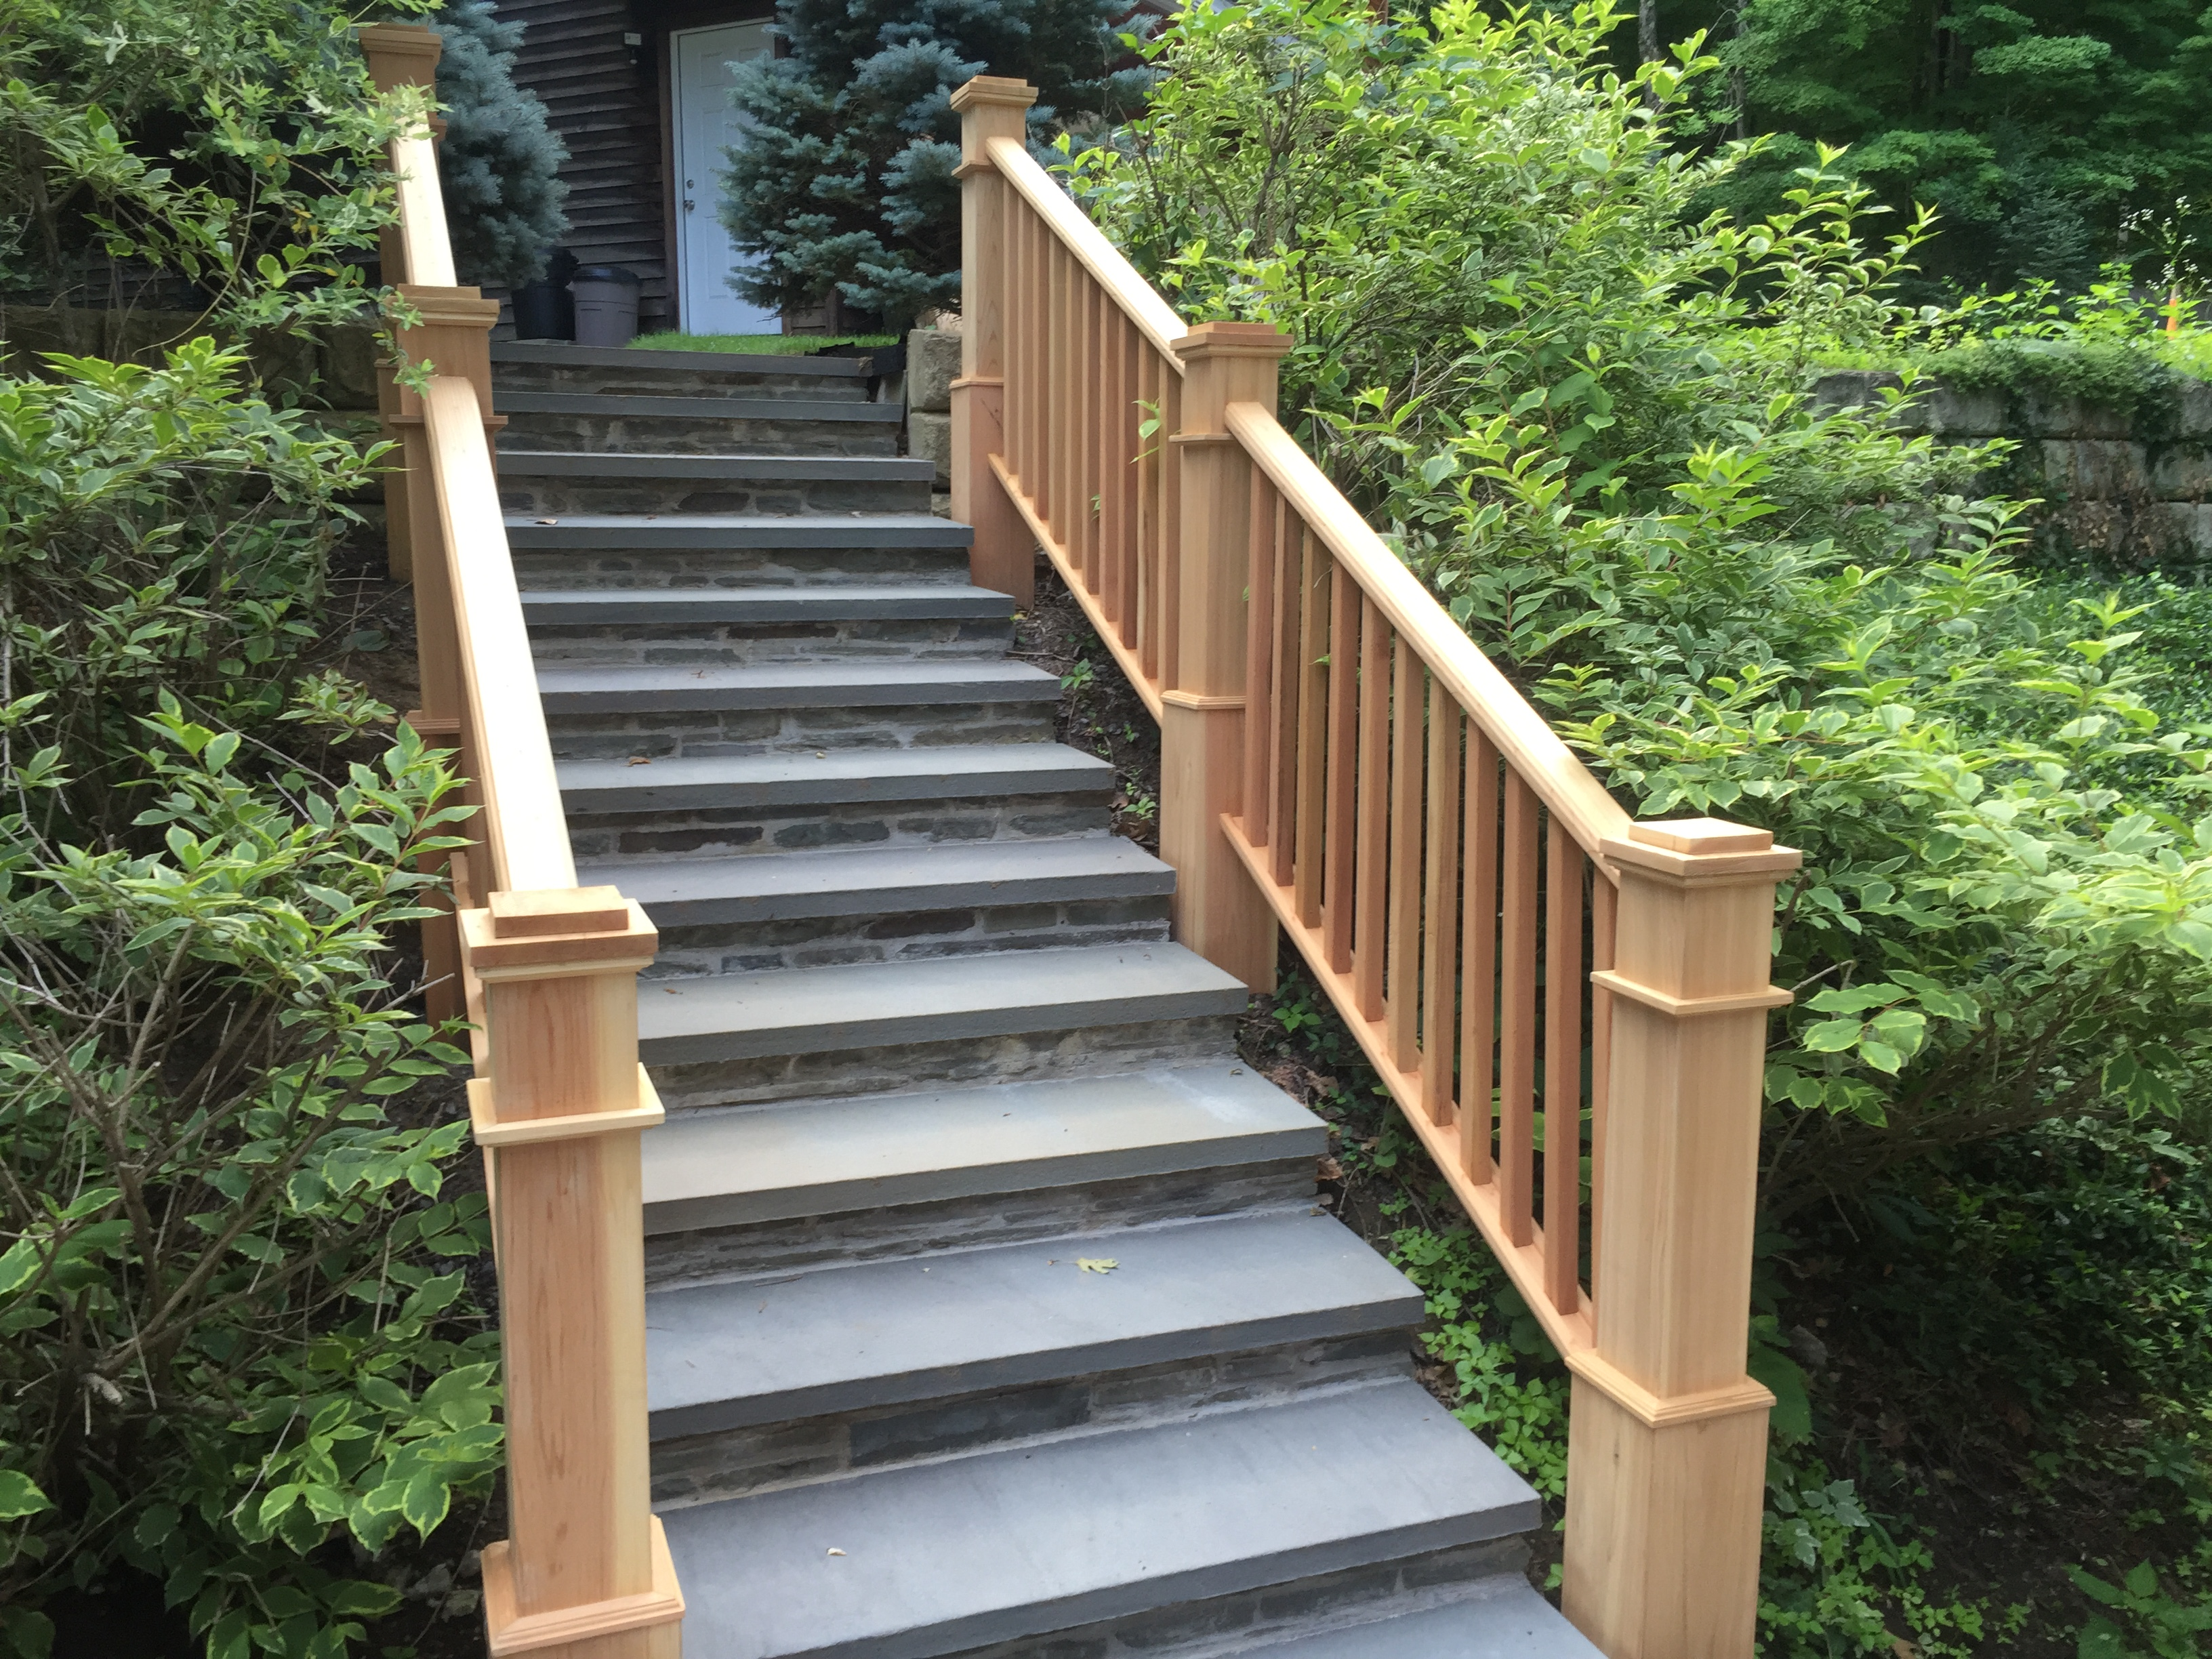 Outdoor Living | Patriot Construction of Upstate New York ... on Patriot Outdoor Living id=95583